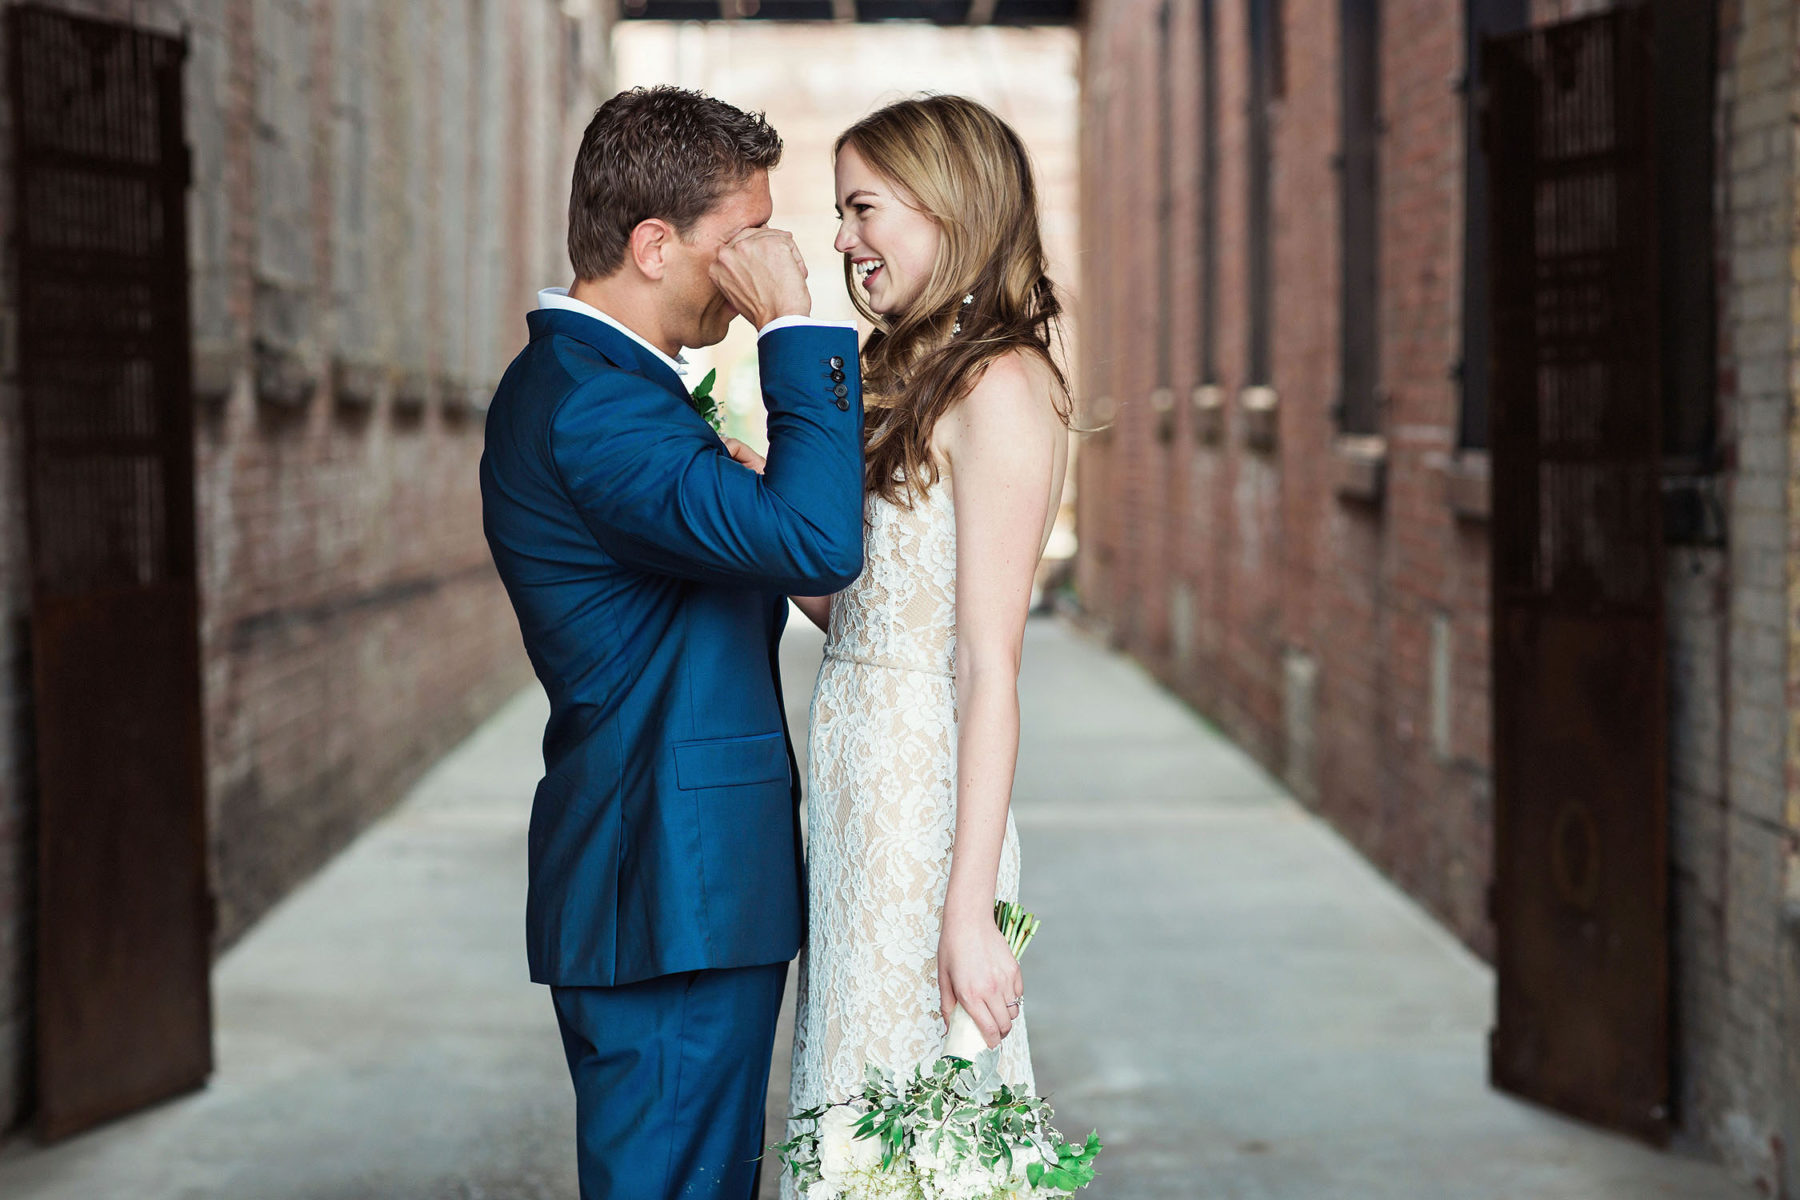 Authentic First Look Pictures - Brooklyn Wedding Photography